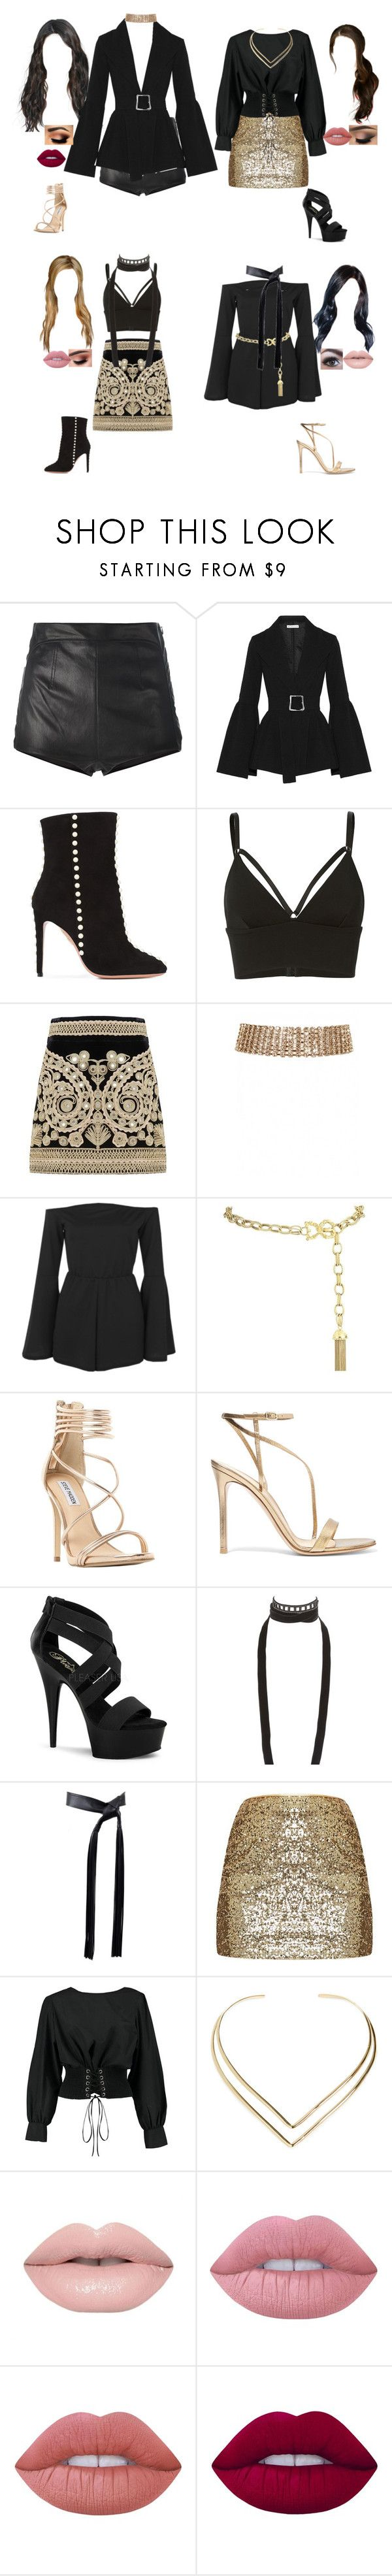 """""""Performing at Seoul Music Awards"""" by kel-bell-453 ❤ liked on Polyvore featuring La Perla, Rejina Pyo, Aquazzura, T By Alexander Wang, For Love & Lemons, Boohoo, Dolce&Gabbana, Steve Madden, Gianvito Rossi and Pleaser"""